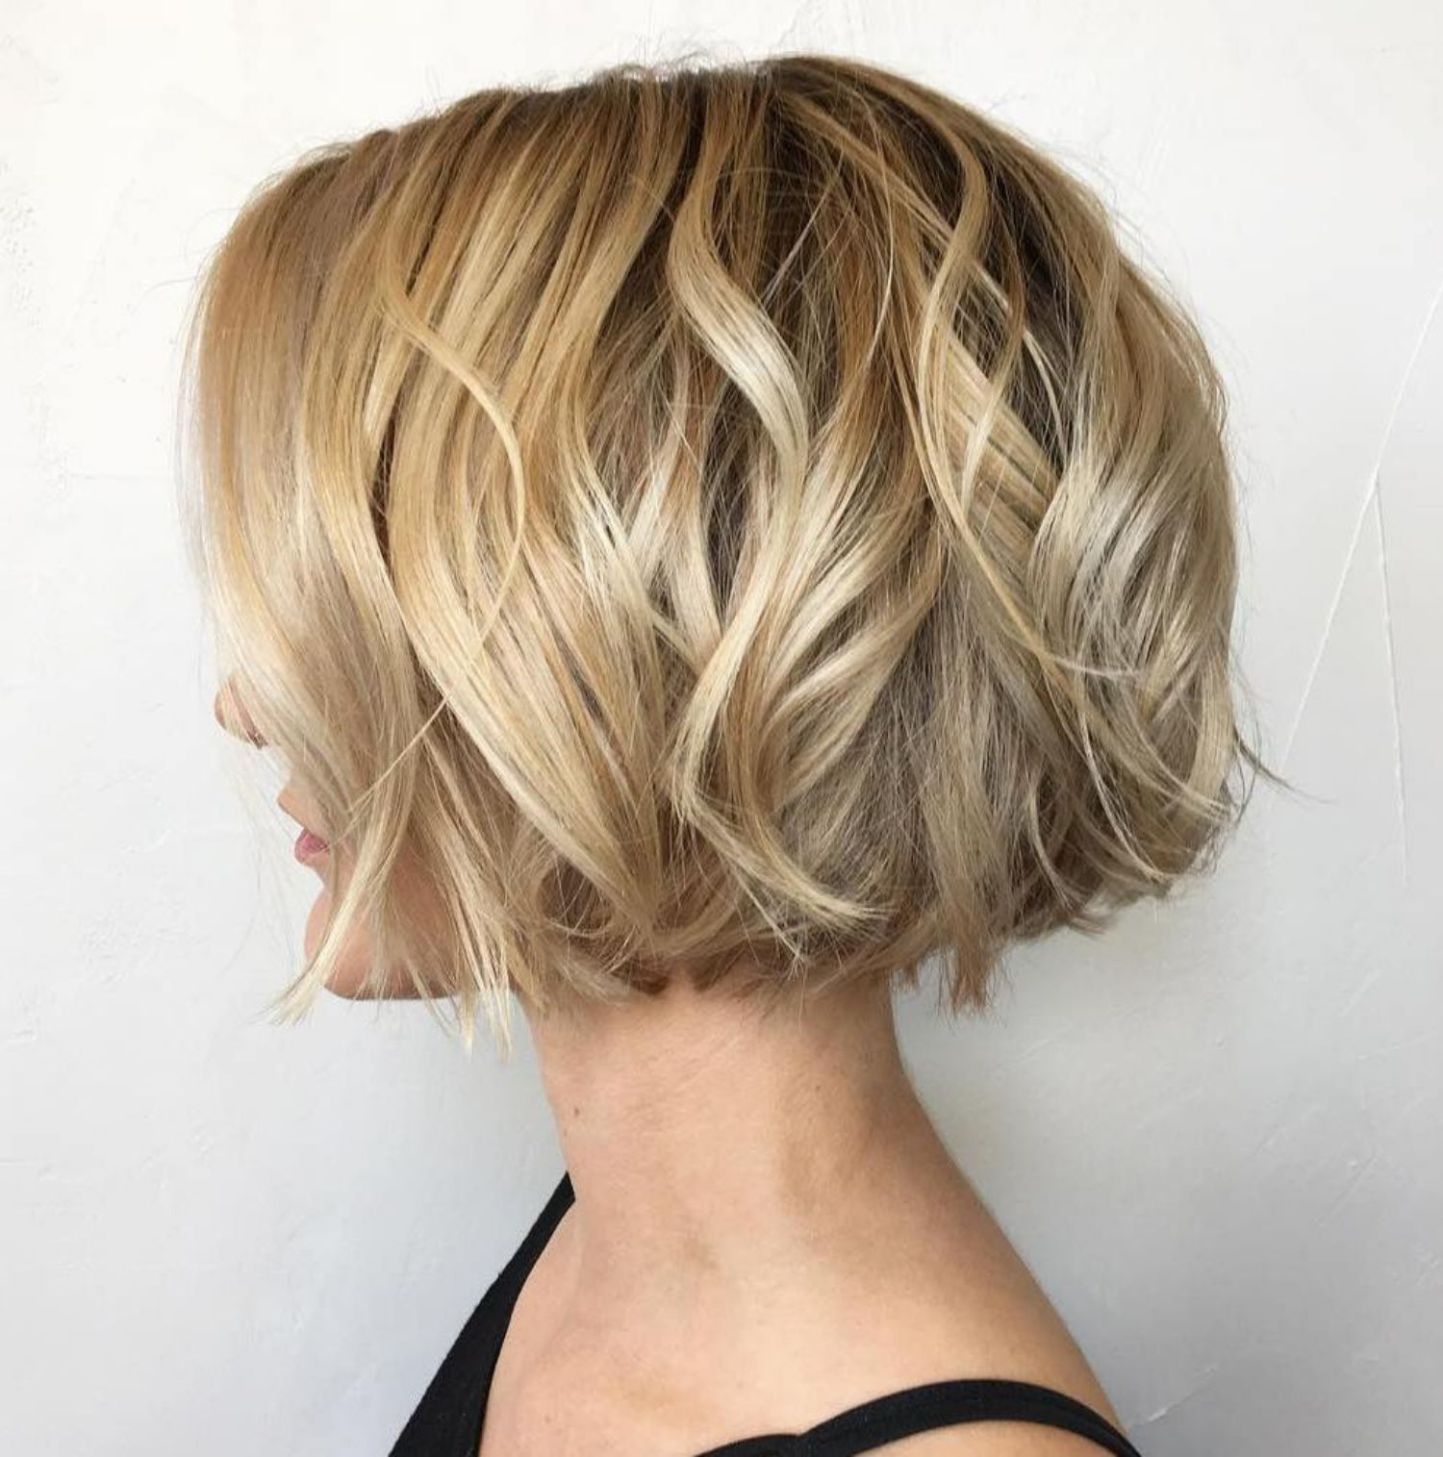 100 Mind Blowing Short Hairstyles For Fine Hair Wavy Bob Hairstyles Hair Styles Short Hair Styles